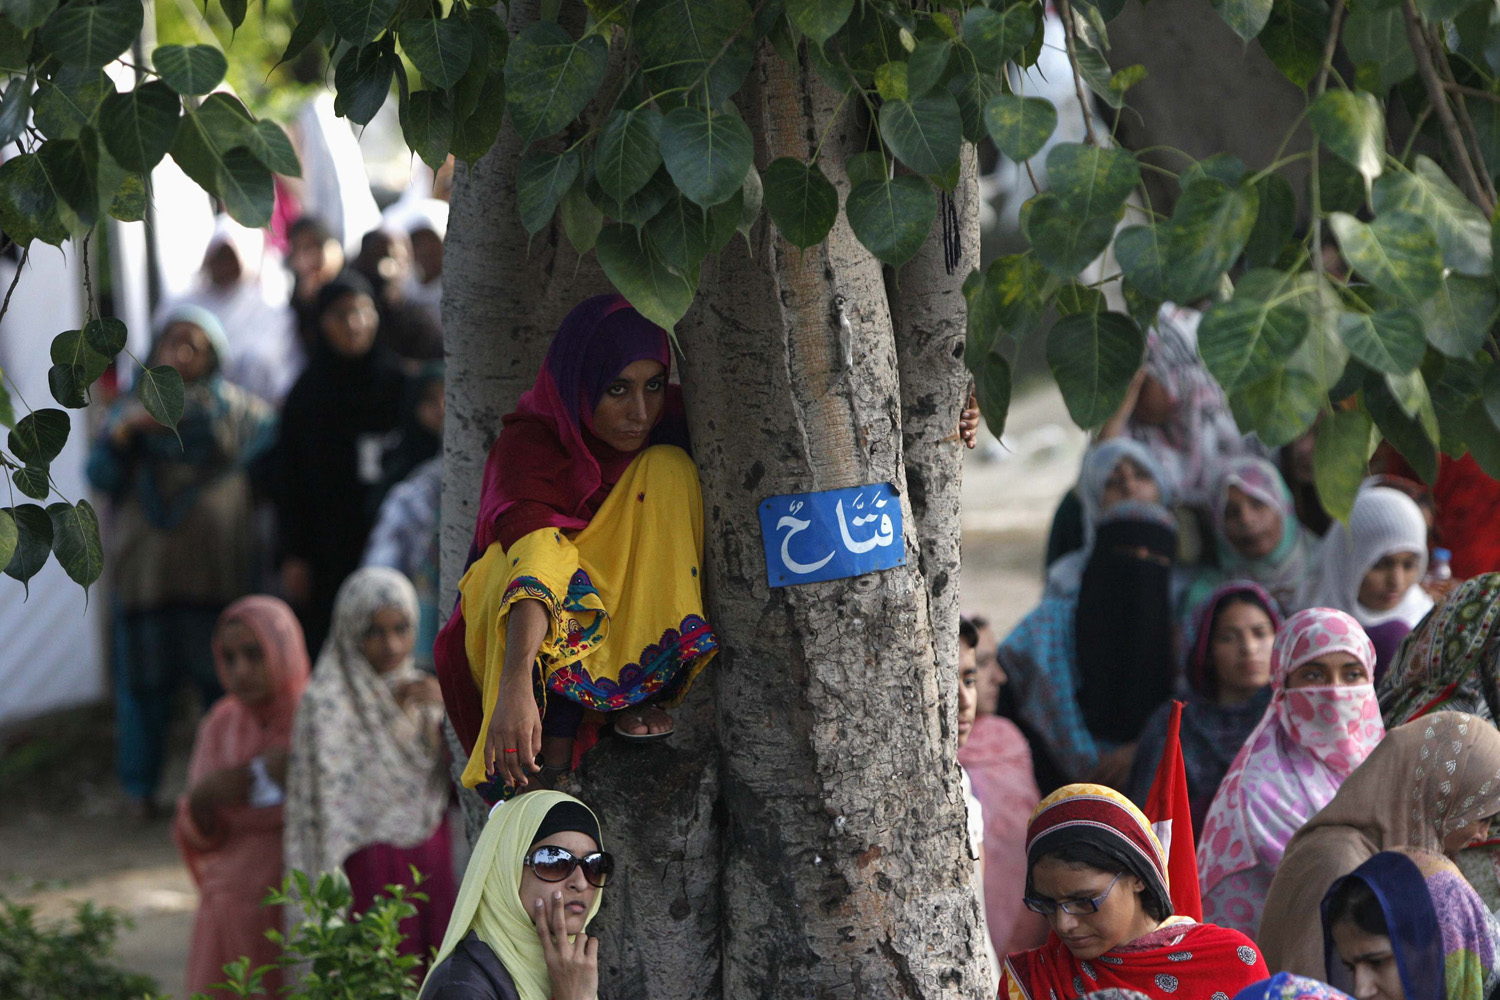 Aug. 18, 2014. A supporter of Mohammad Tahir ul-Qadri, Sufi cleric and leader of political party Pakistan Awami Tehreek (PAT), sits on a tree while listening to his speech with others during the Revolution March in Islamabad.